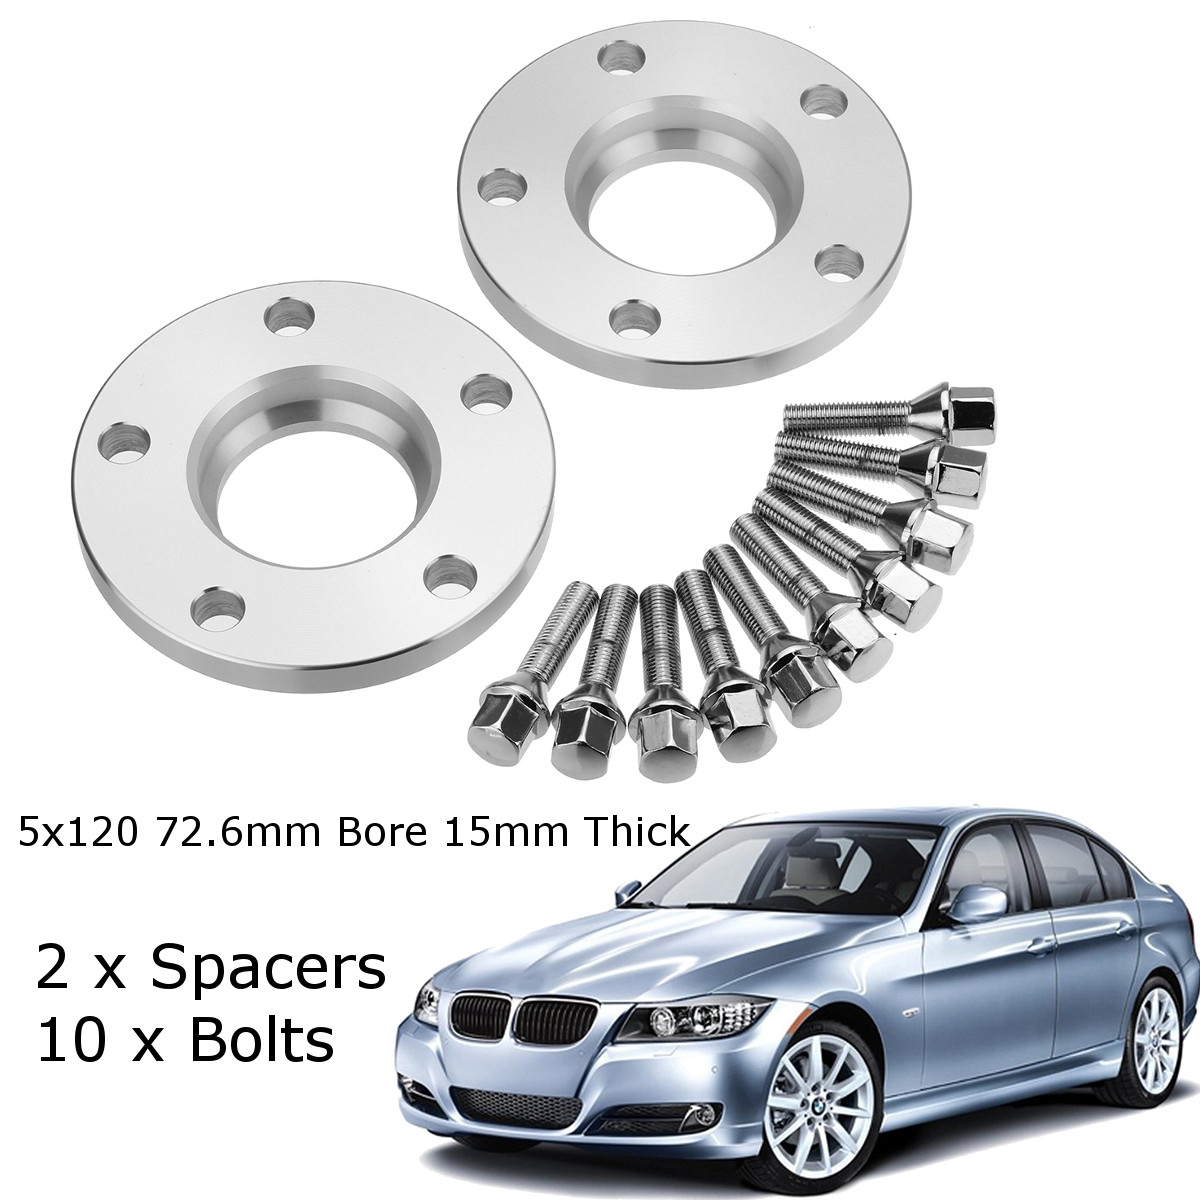 Car 15mm Wheel Spacer Adapter 5x120mm Tire Spacer Aluminum For BMW 1 3 5 6 7